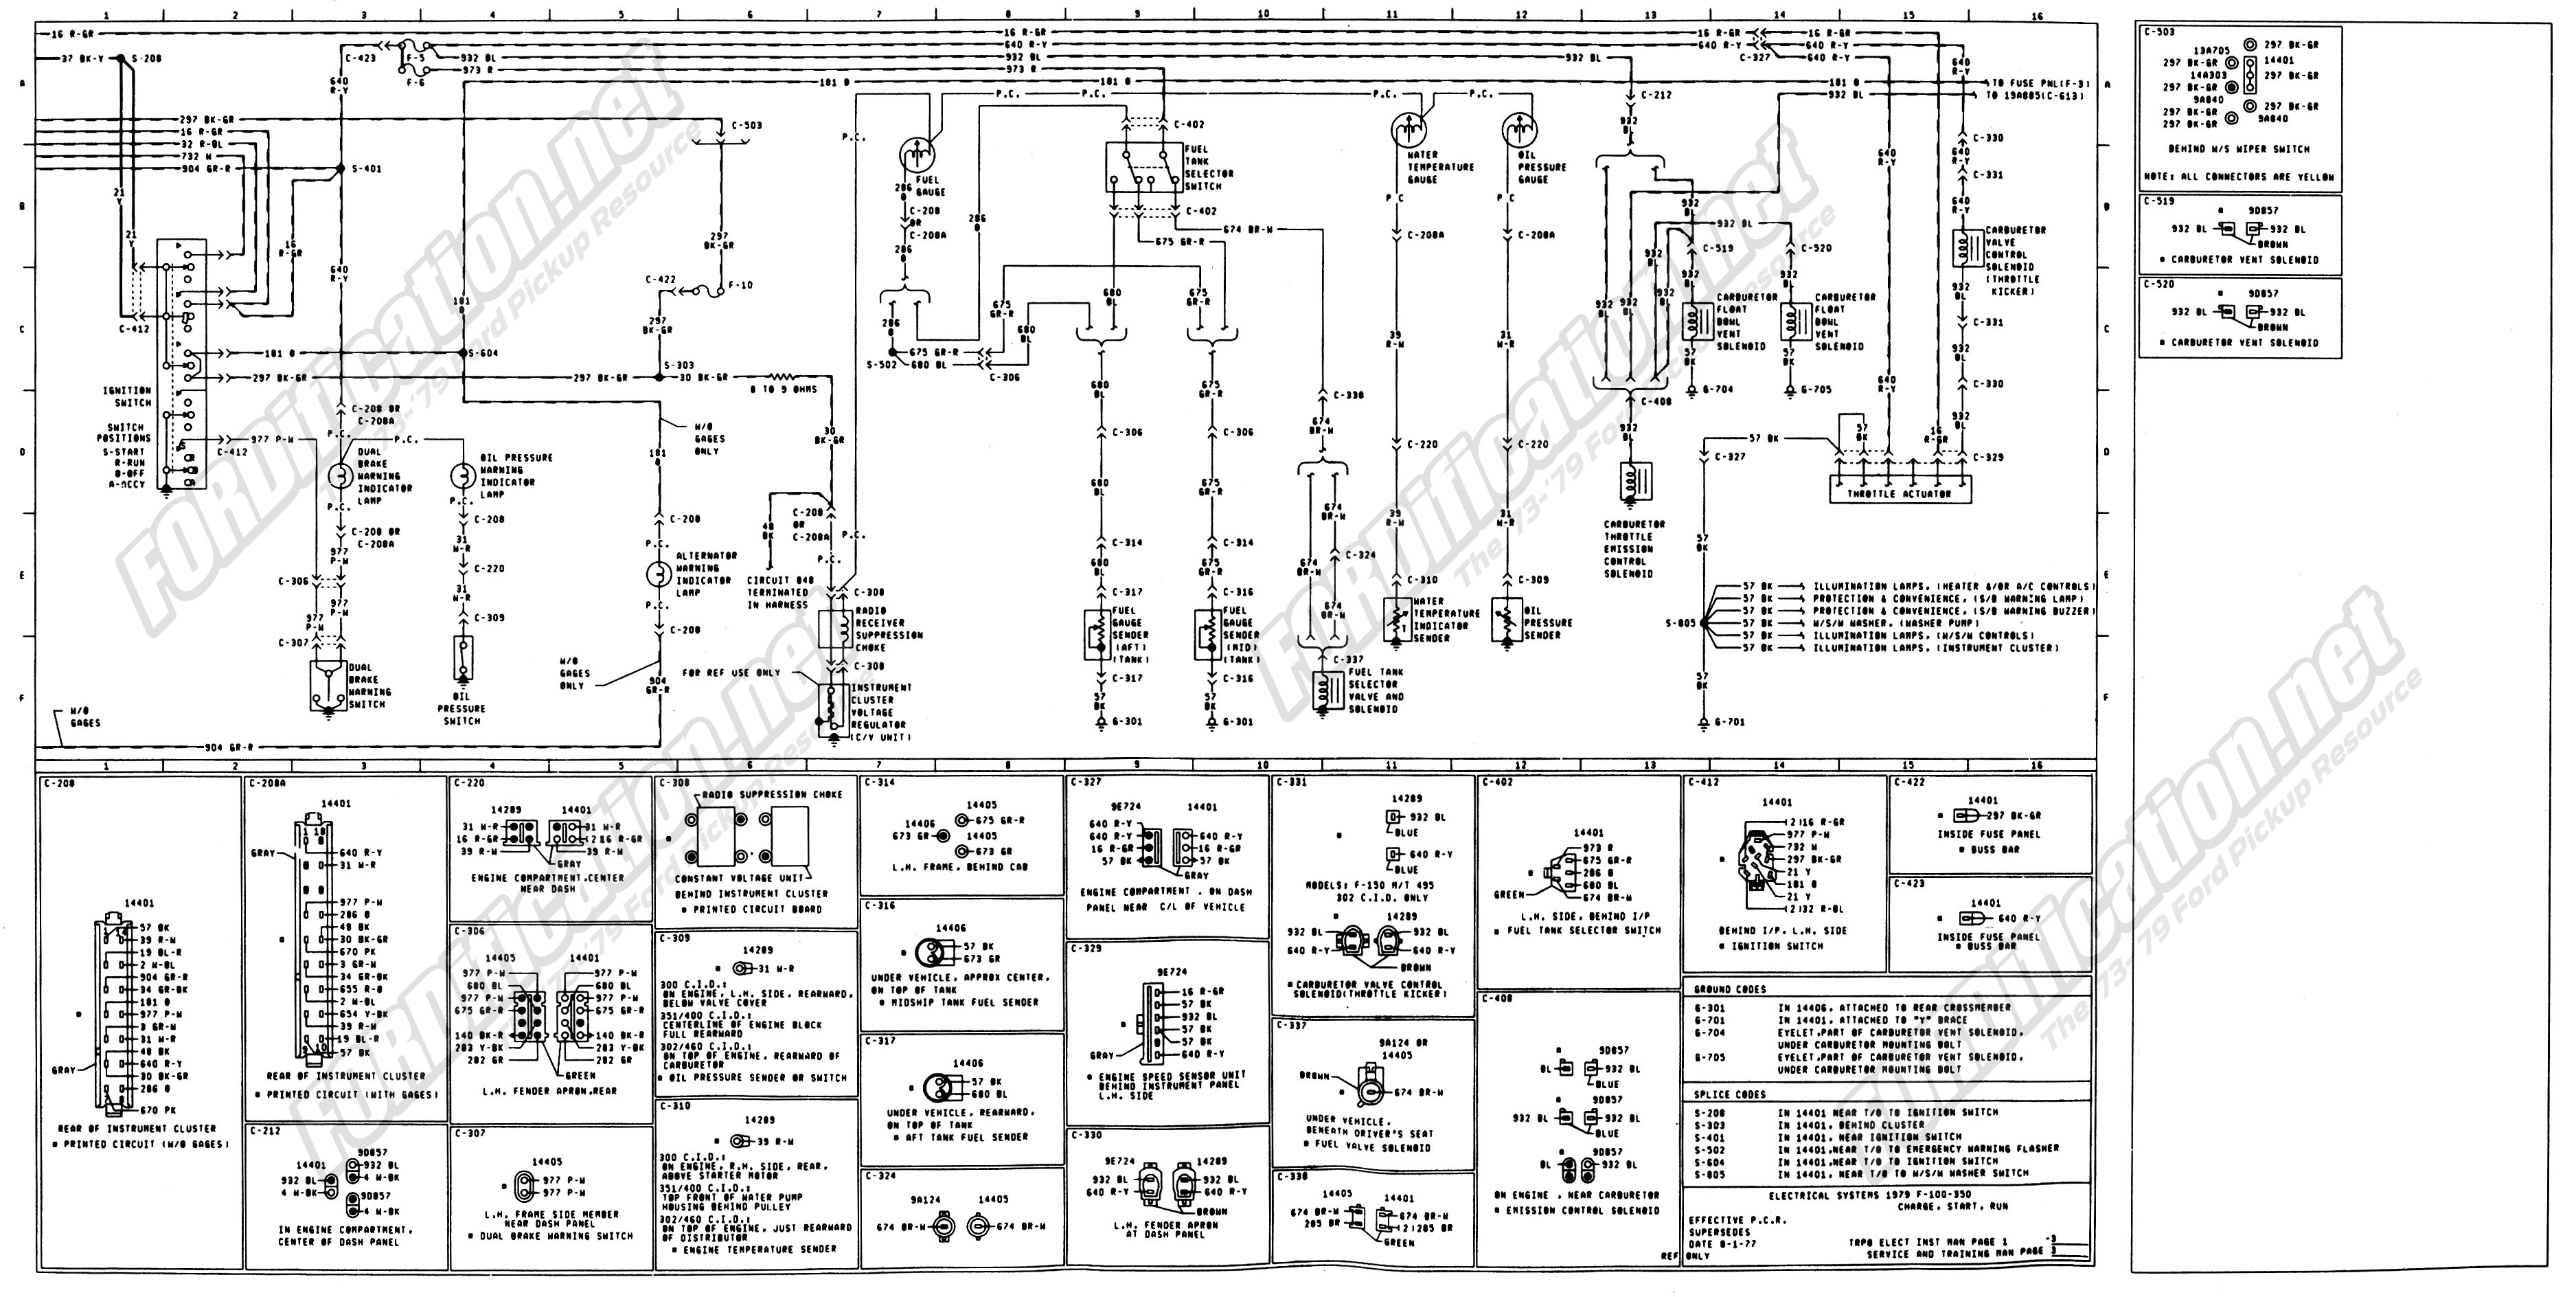 74 F100 Wiring Diagram Just Another Data Ford 3000 Instrument Cluster 1973 1979 Truck Diagrams Schematics Fordification Net Unilite Distributor